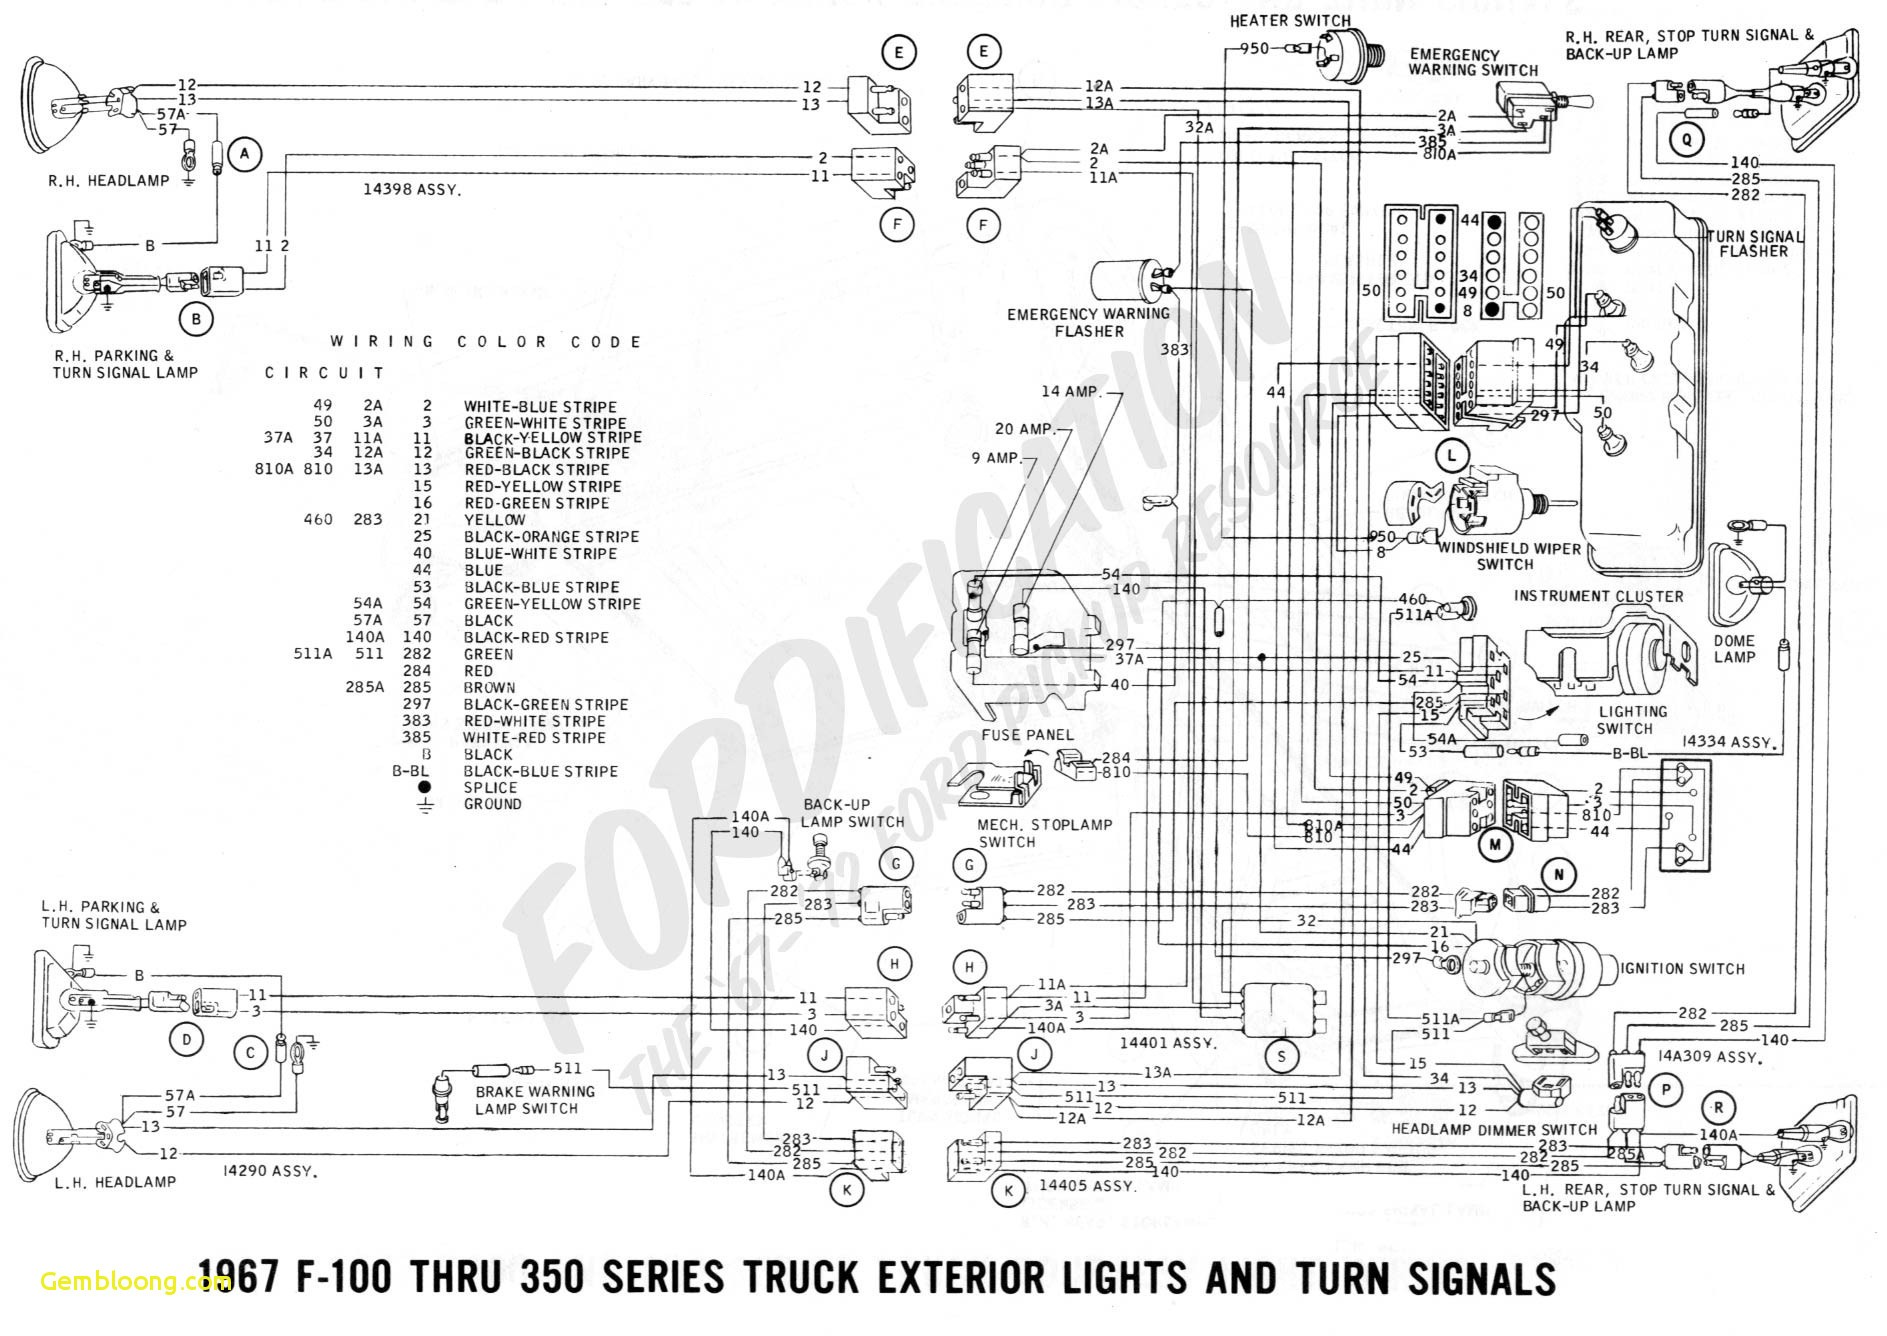 Diagram Of A Truck Download ford Trucks Wiring Diagrams ford F150 Wiring Diagrams Best Of Diagram Of A Truck